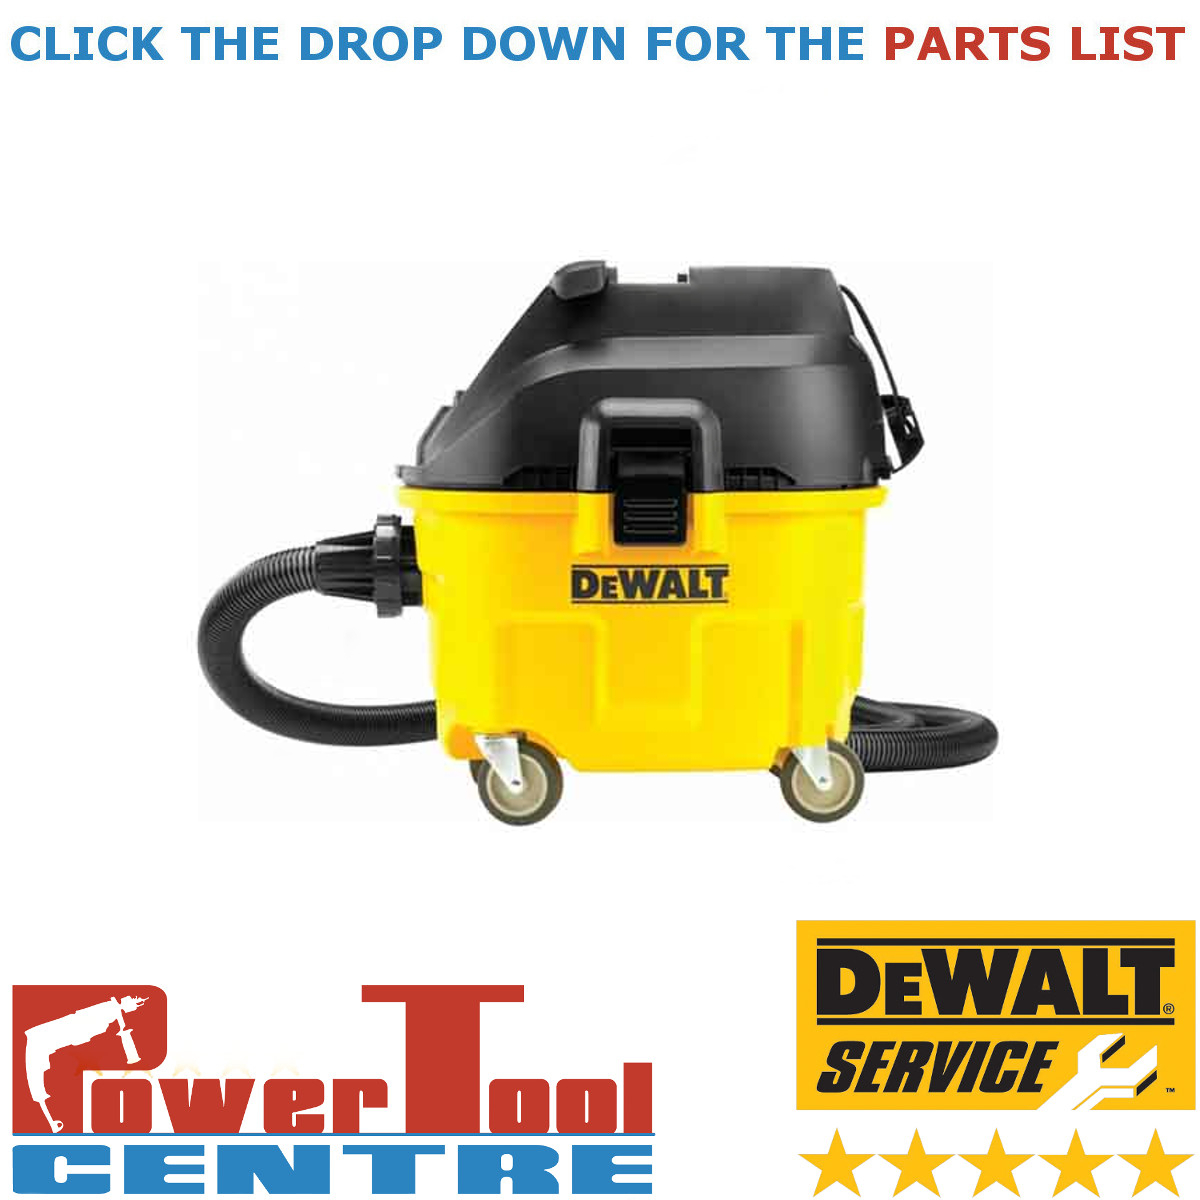 Dewalt Dust Extractor >> Details About Dewalt Genuine Spare Parts Dwv900l Dust Extractor Type 1